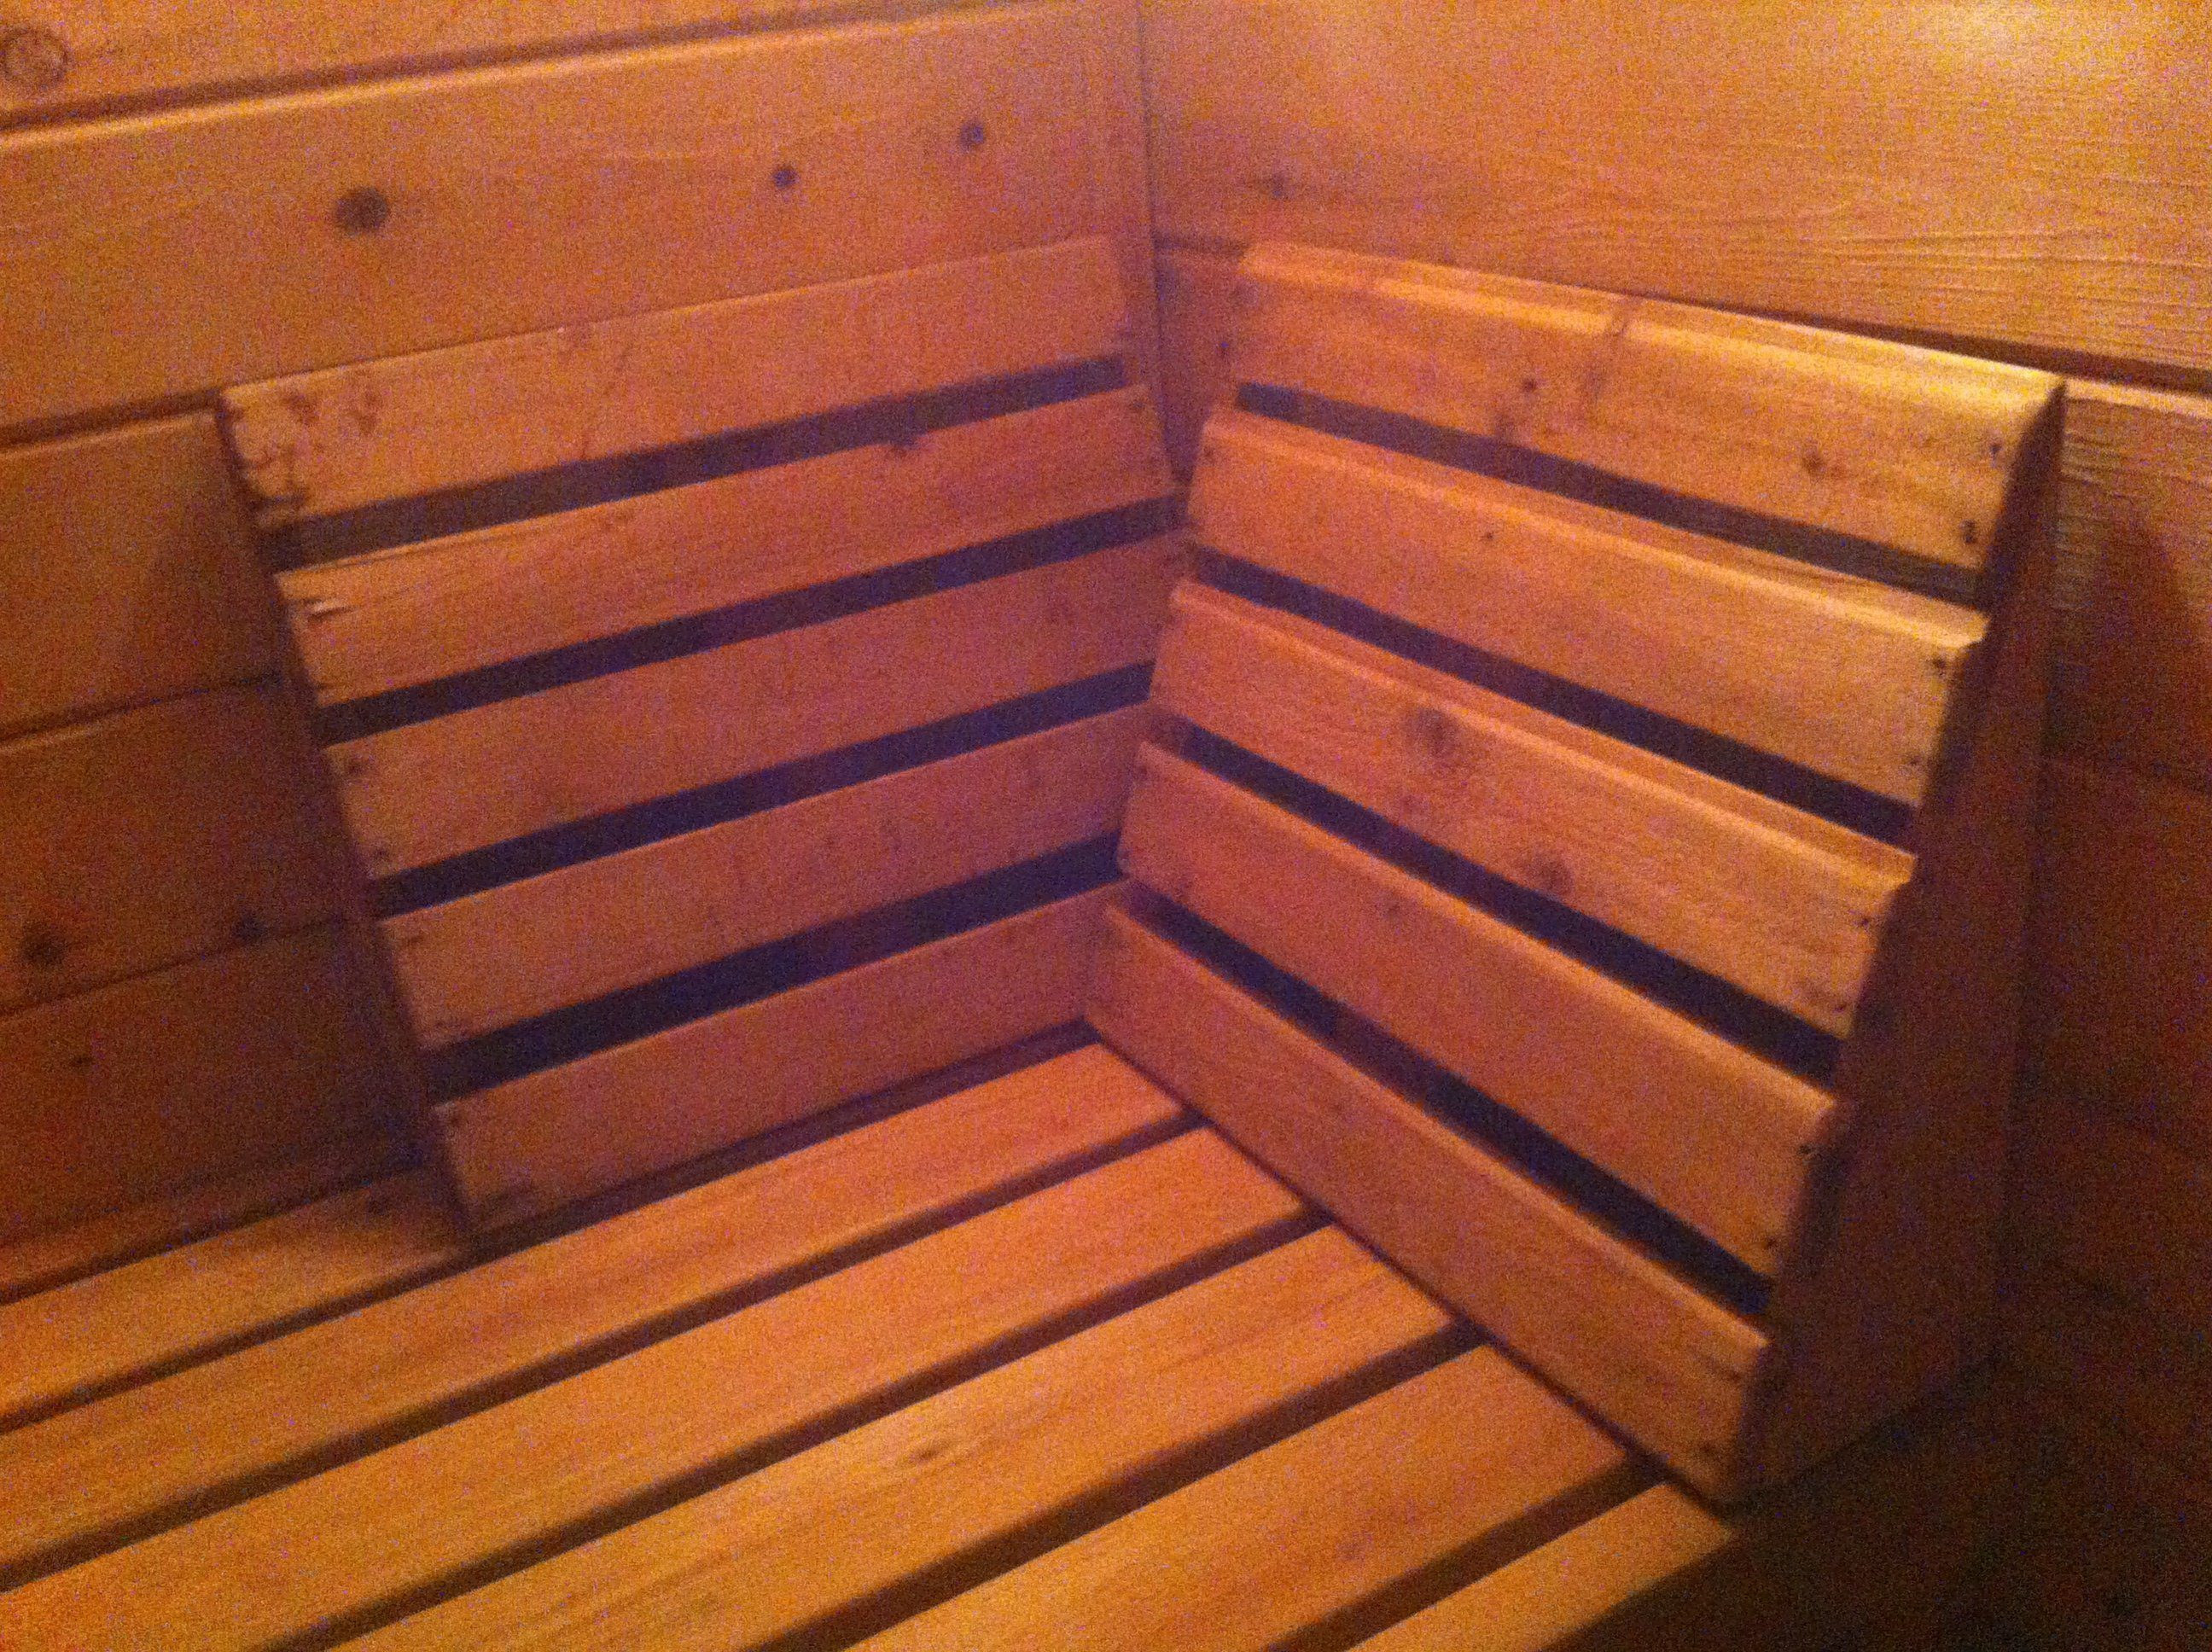 sauna backrests we all deserve this level of support and